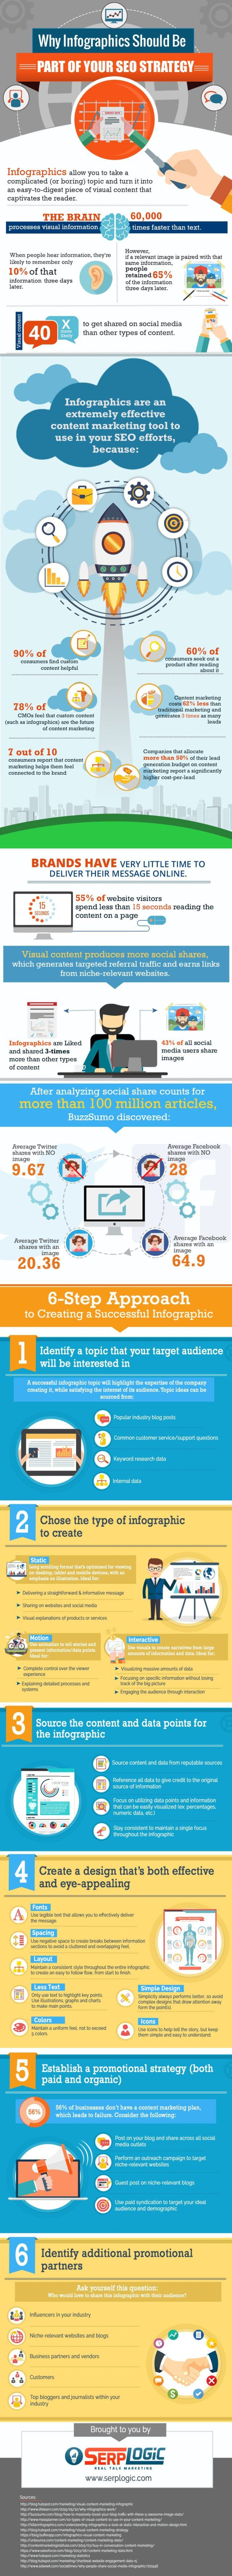 infographics-seo-strategy-640x7112-1